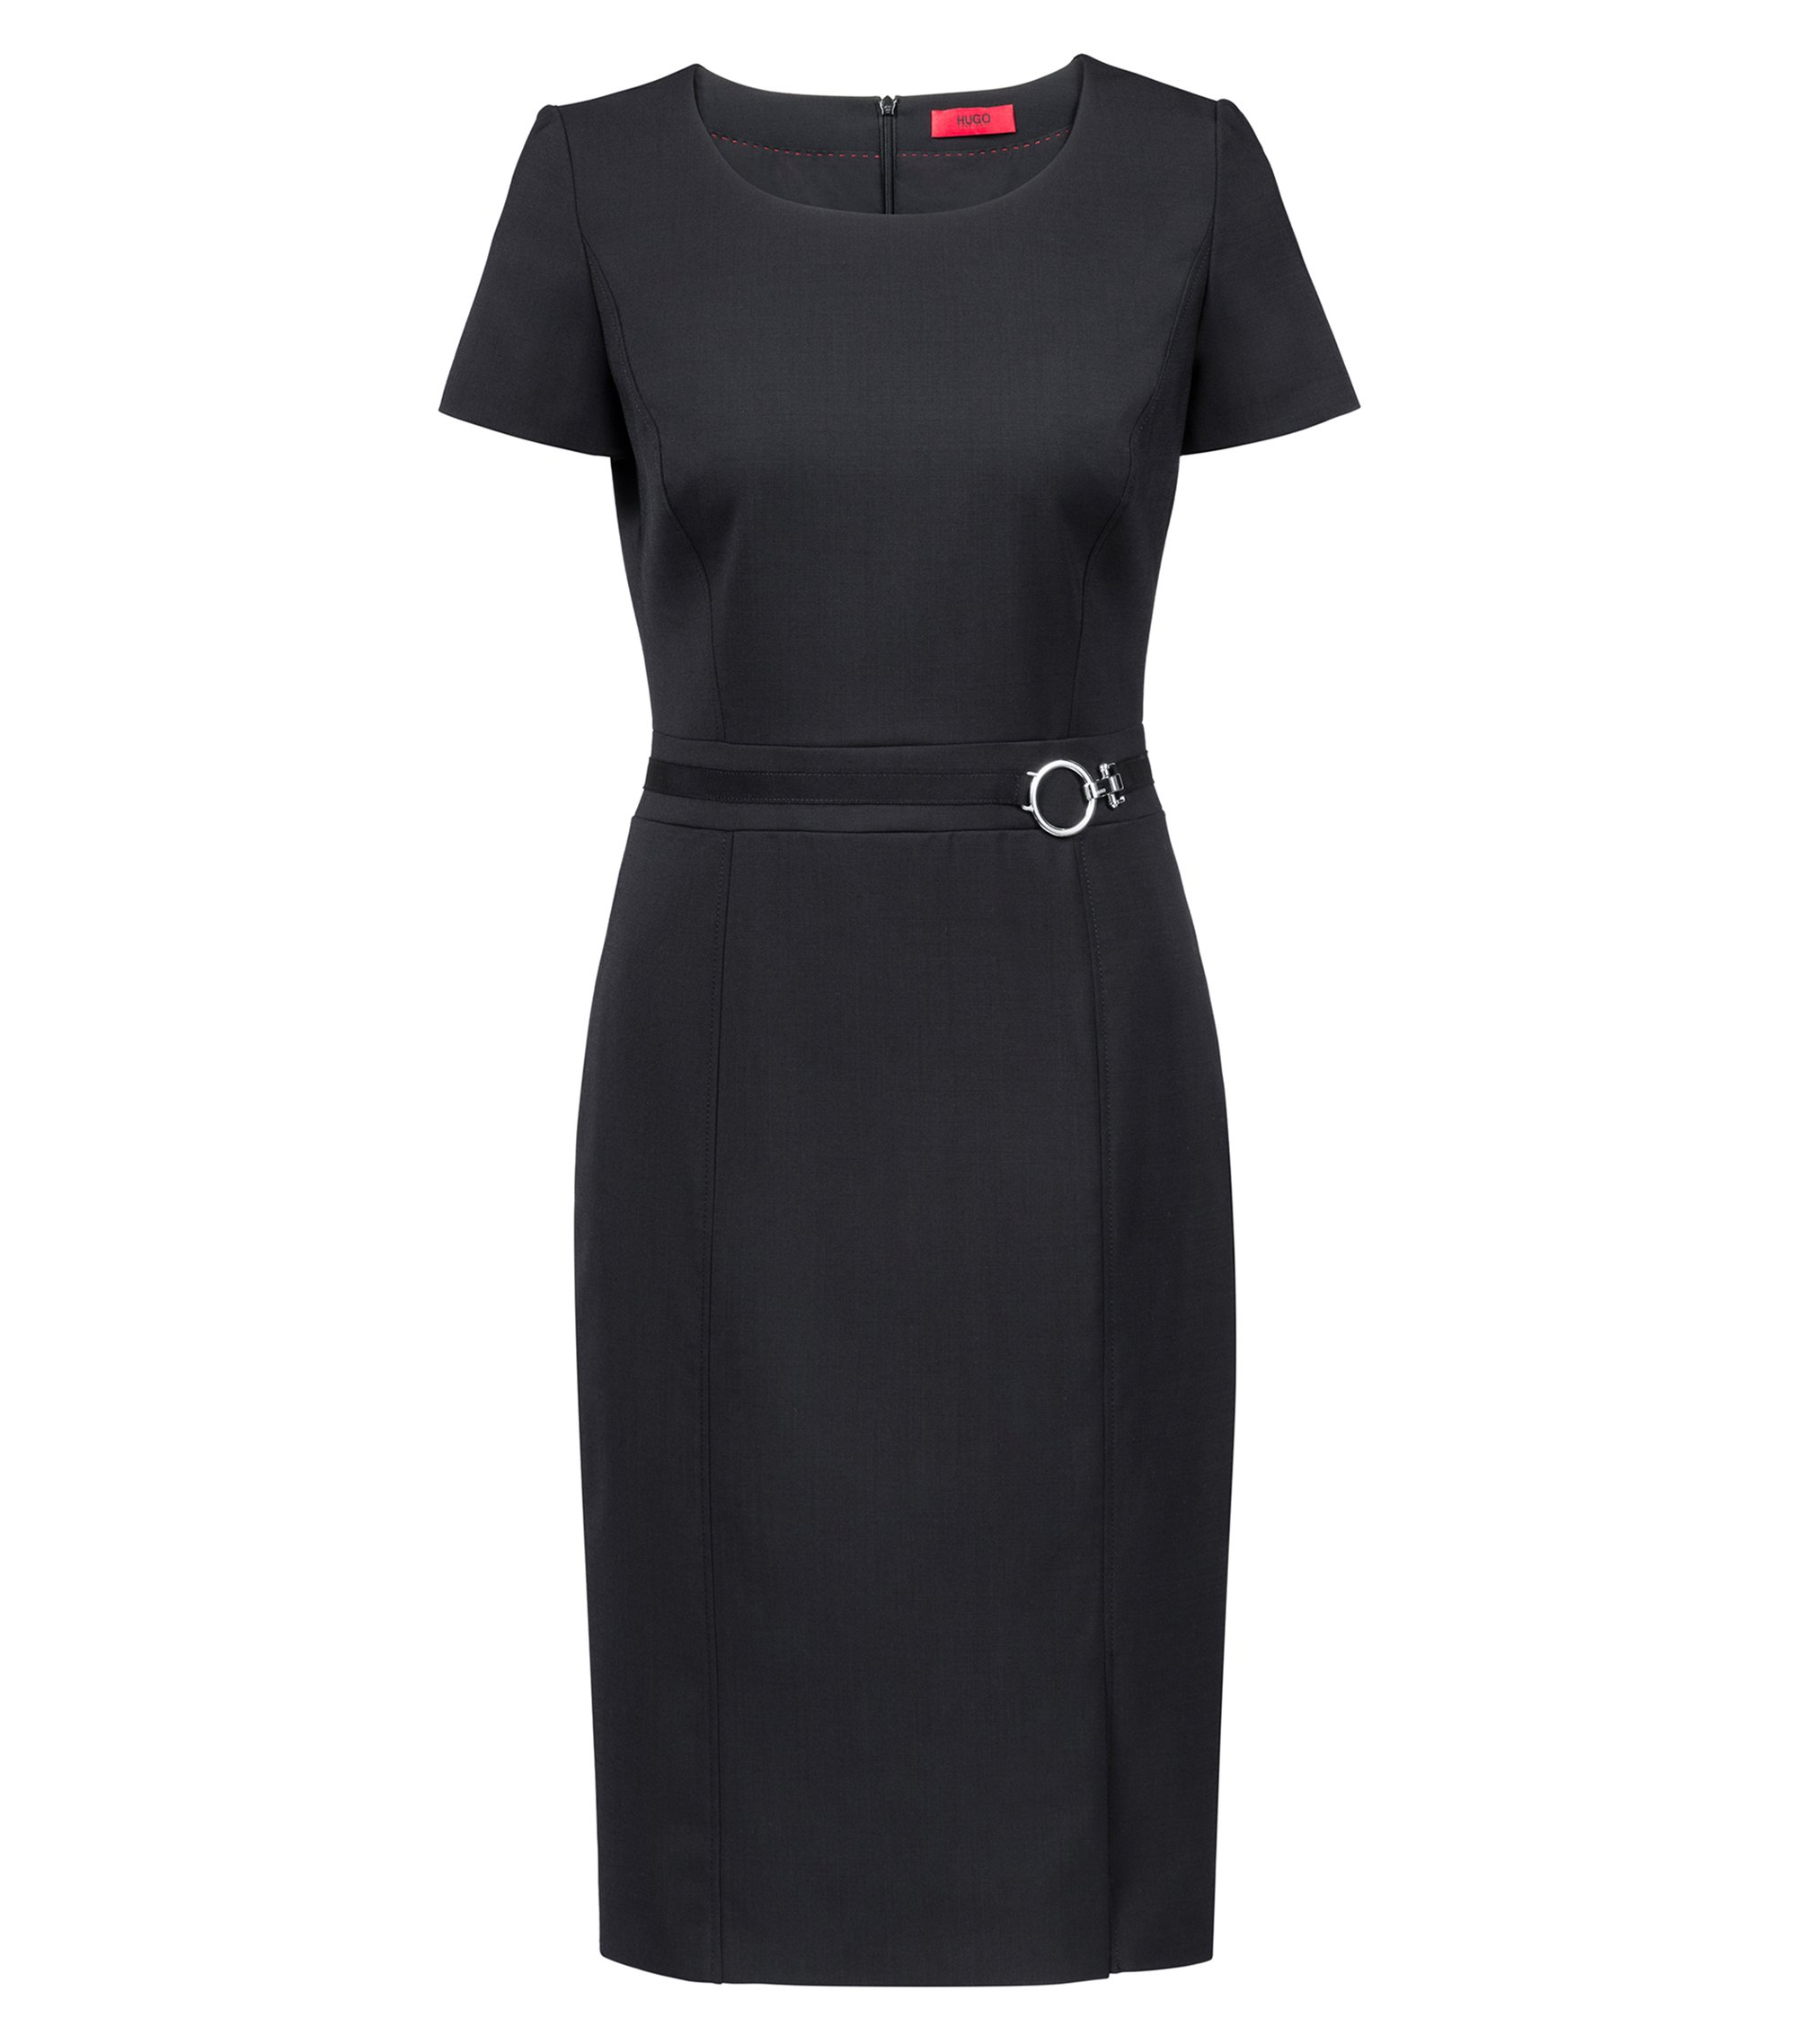 Pencil dress in stretch virgin wool with silver-tone buckle, Black